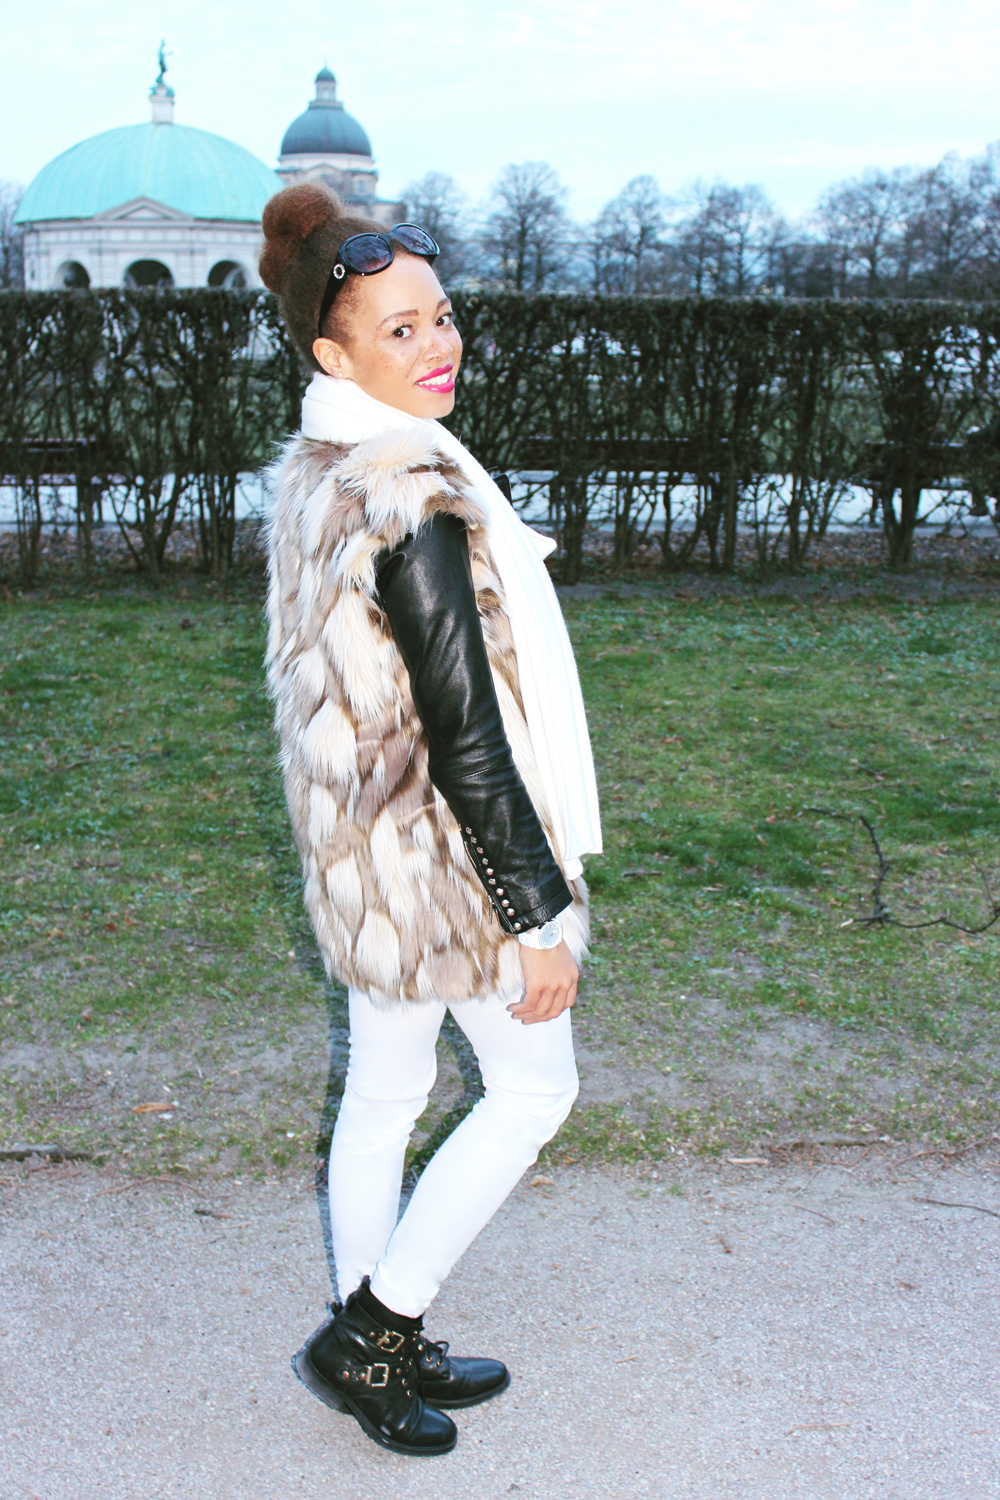 fatimayarie-fauxfurvest-leatherjacket-michaelkors-watch-whitepants-img_3054